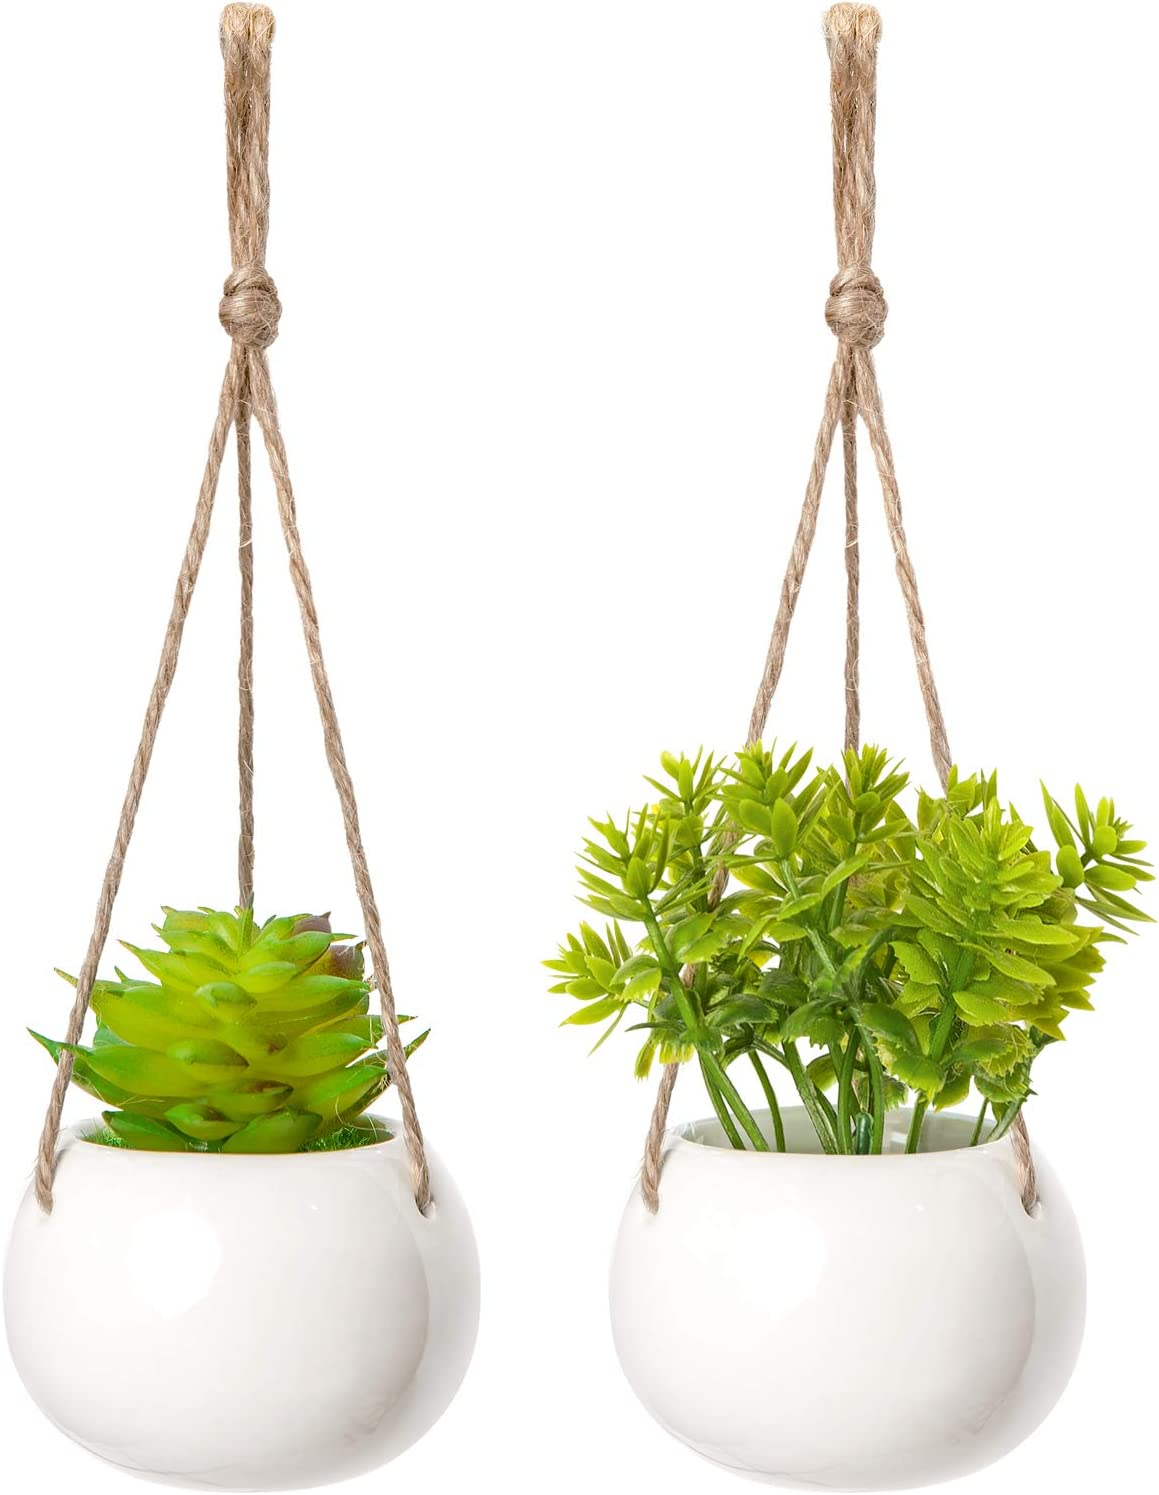 Mkono Mini Plant Car Hanging 2 Pcs Handmade Rear View Mirrior Car Charm Jute Hanging Planter with Ceramic Pot and Faux Succulent Plant for Car Home Decorations Father,s Day Gift, Approximate 8 inch